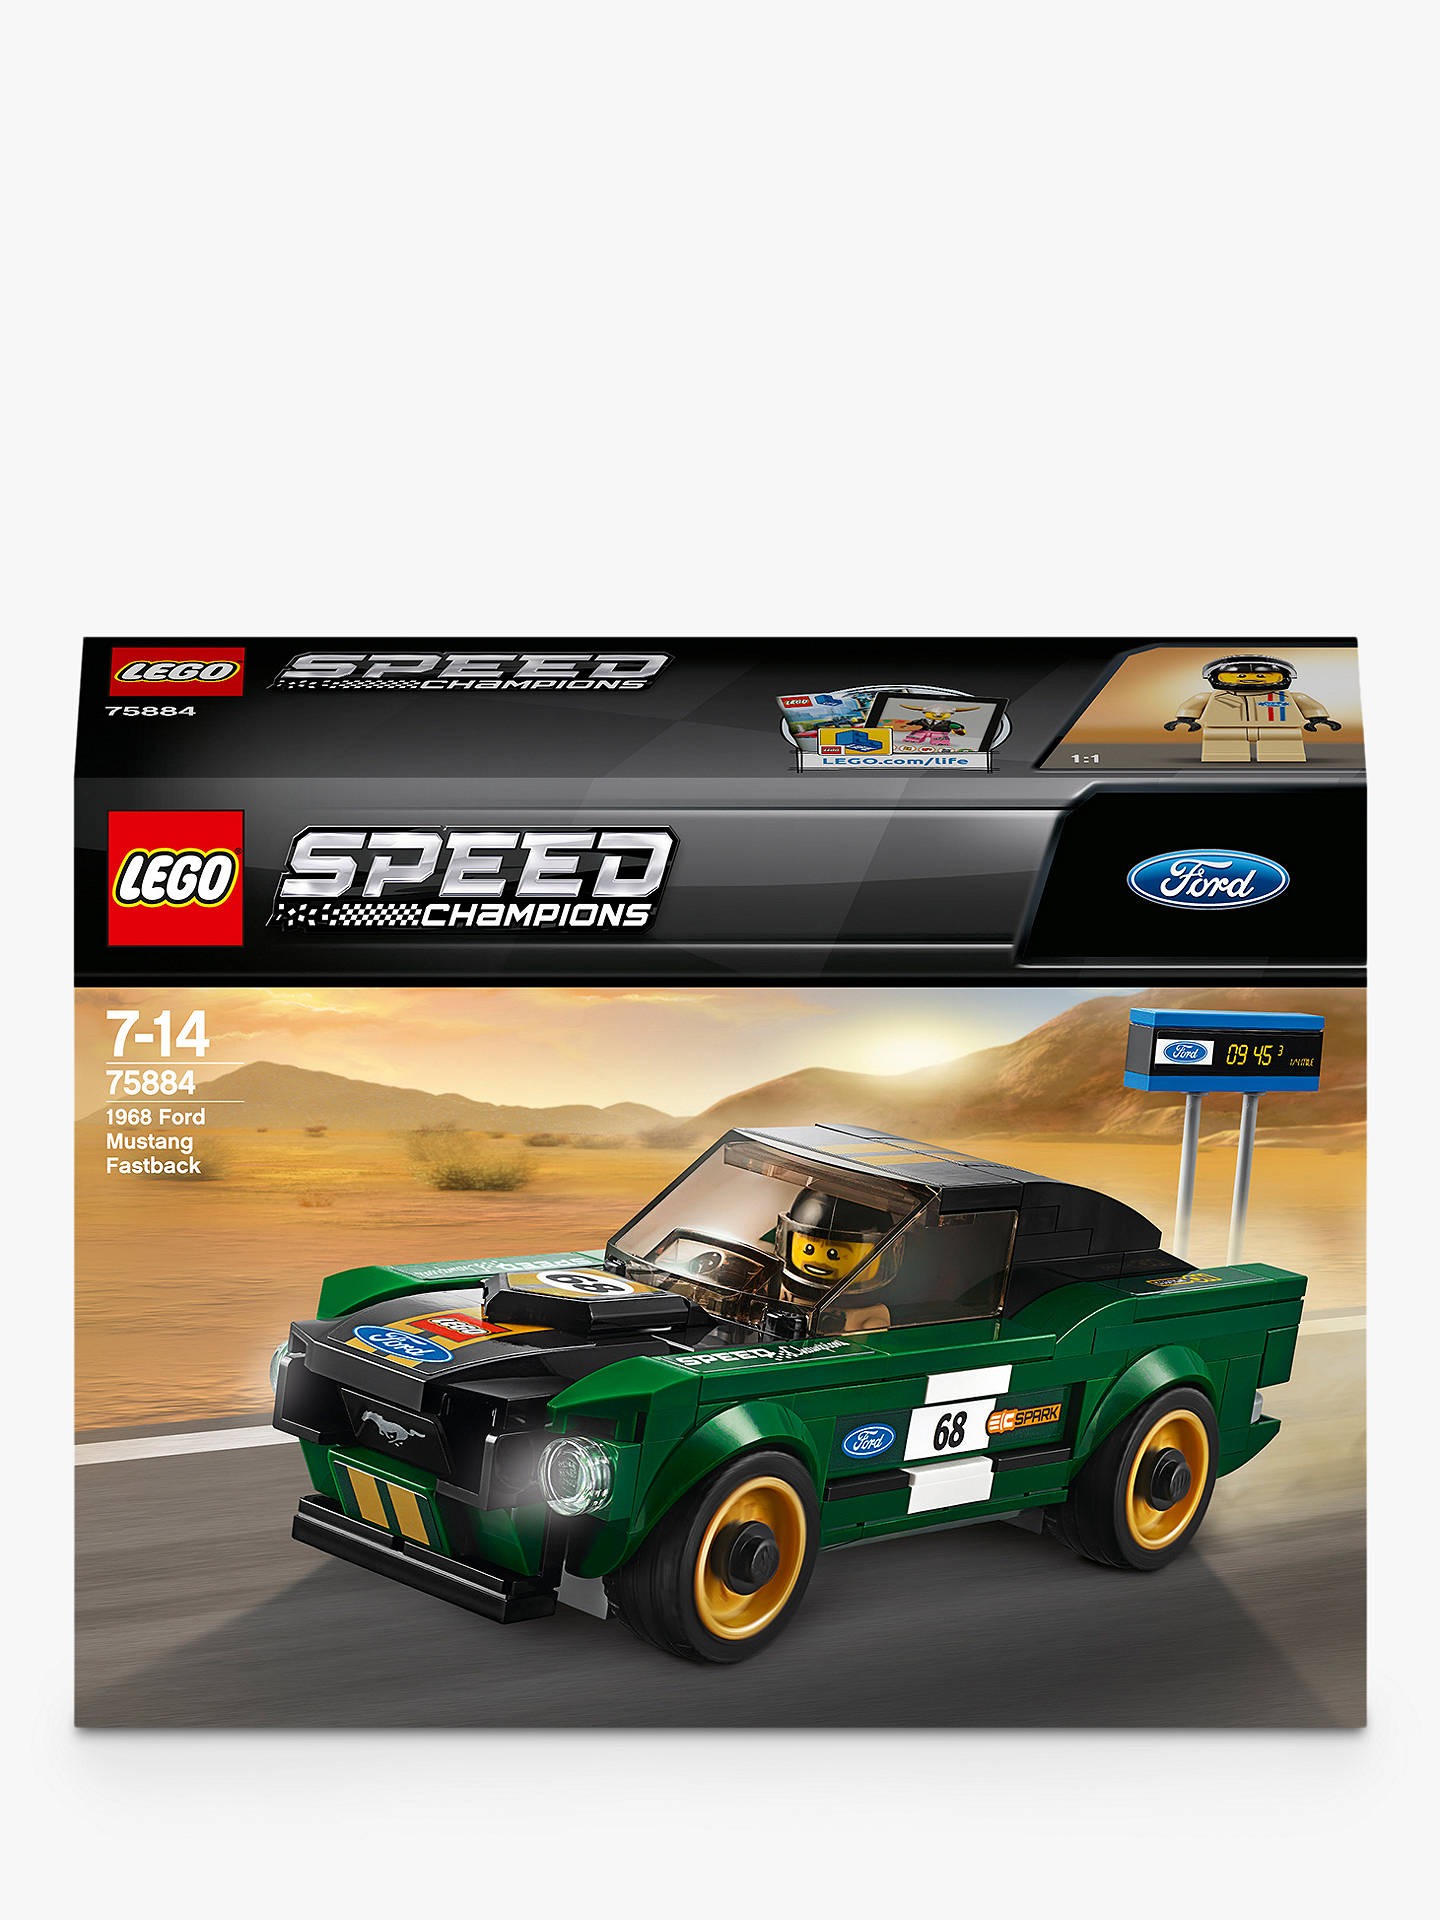 Lego speed champions 75884 1968 ford mustang fastback racing car